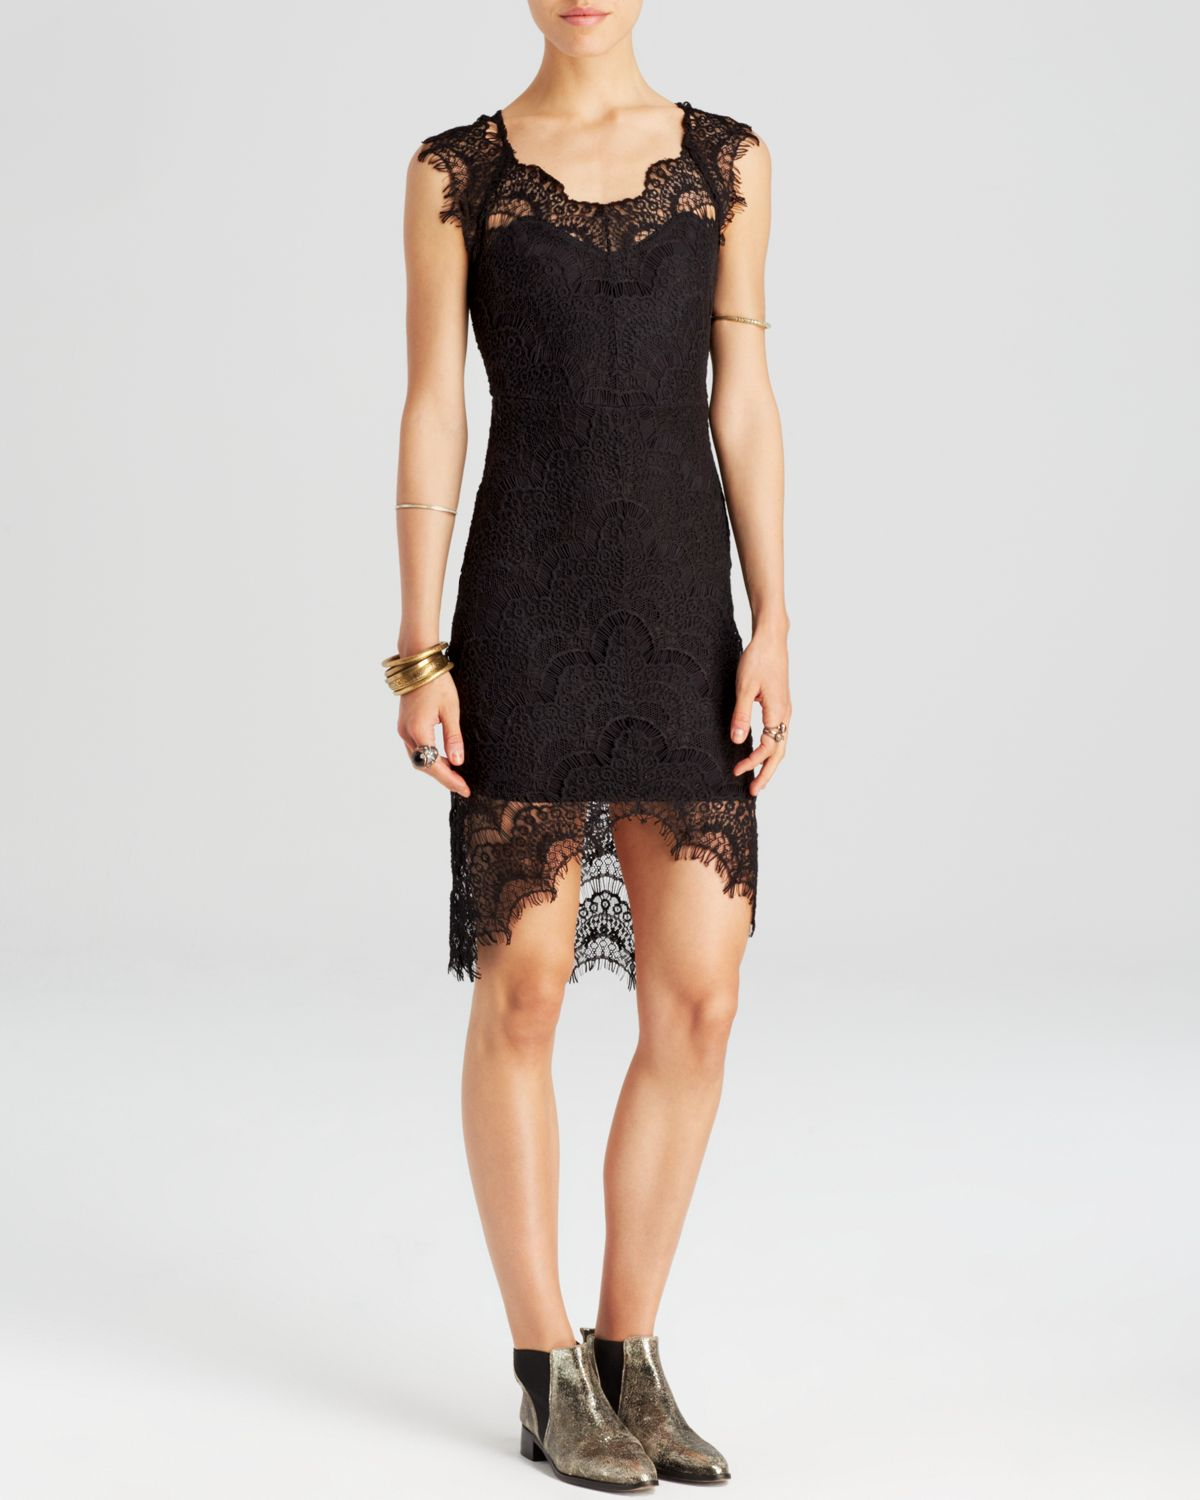 Free People Dress Peekaboo Slip Lace Scallop In Black Lyst